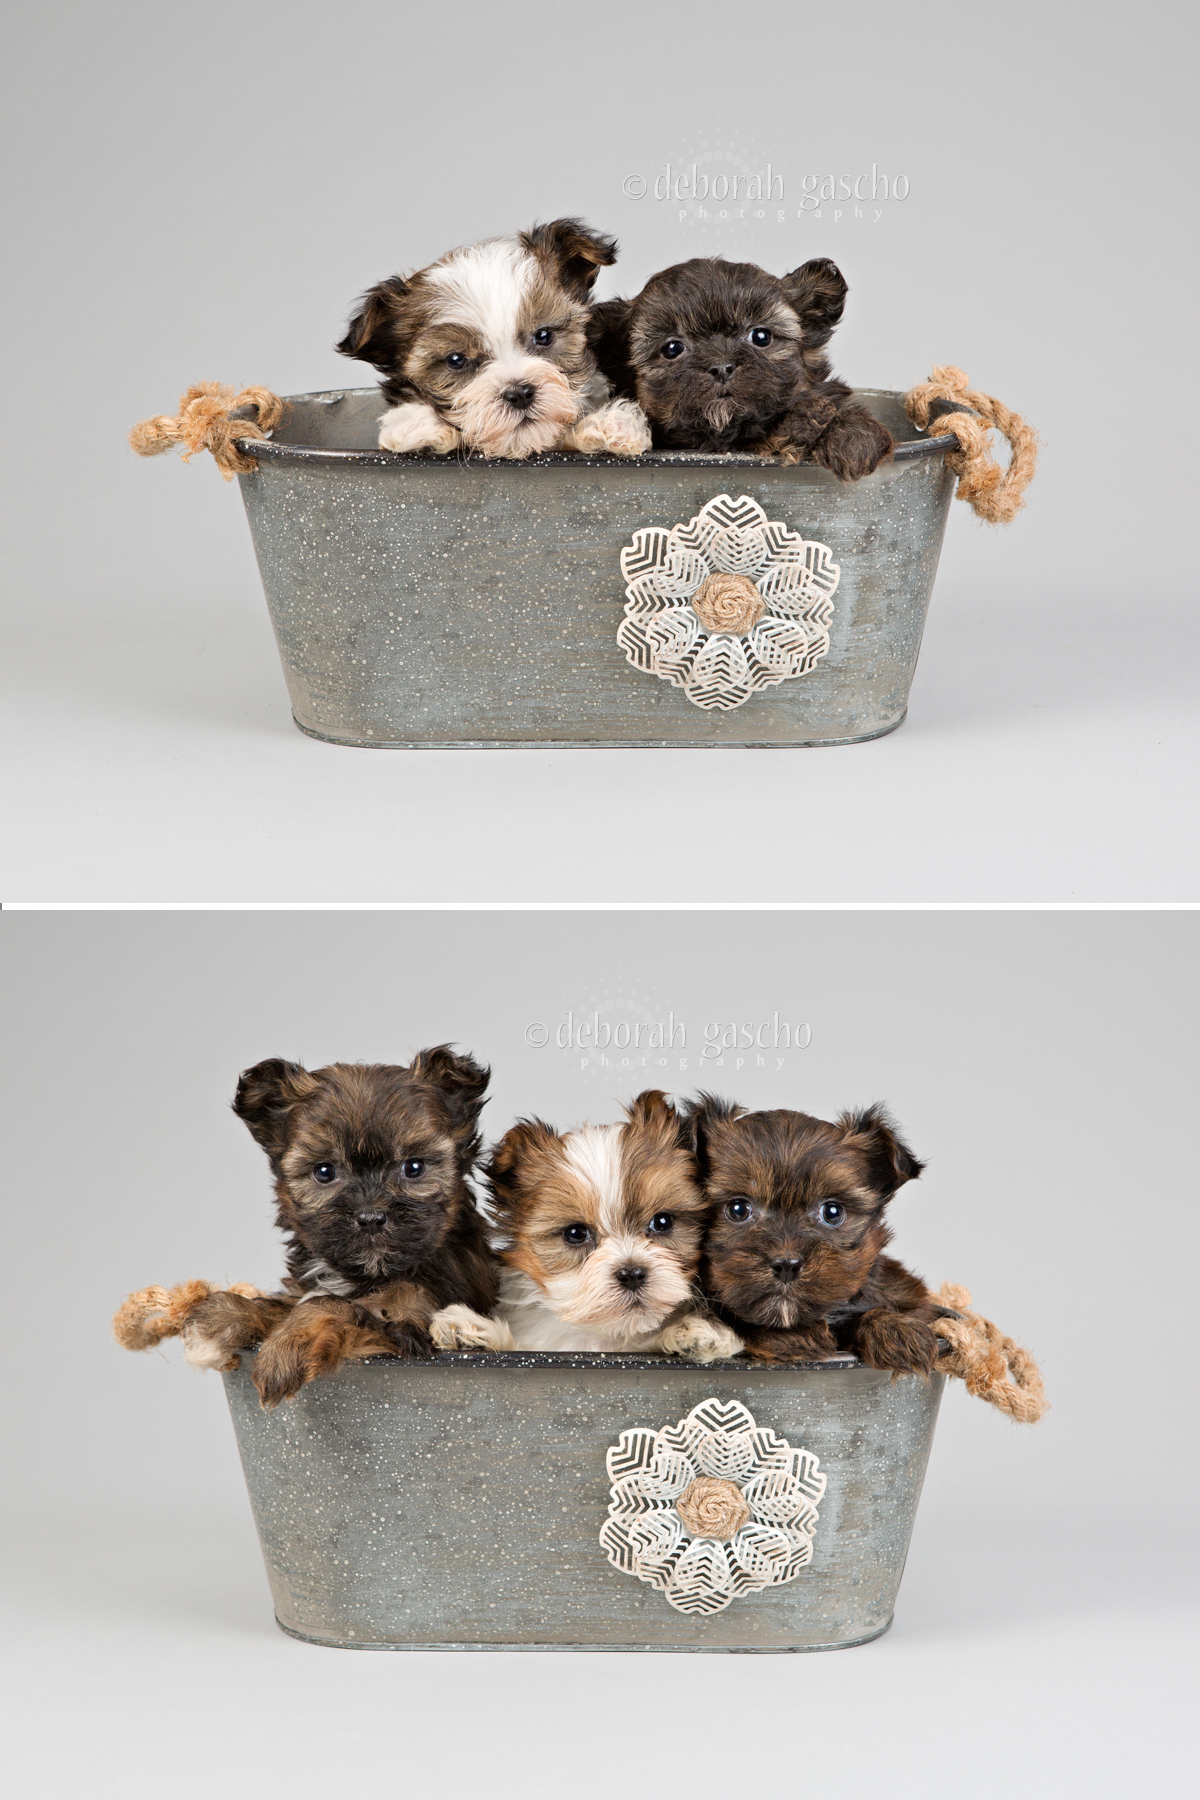 Shorkie Yorkie Poo Puppies Available Willowbrook Kennel 519